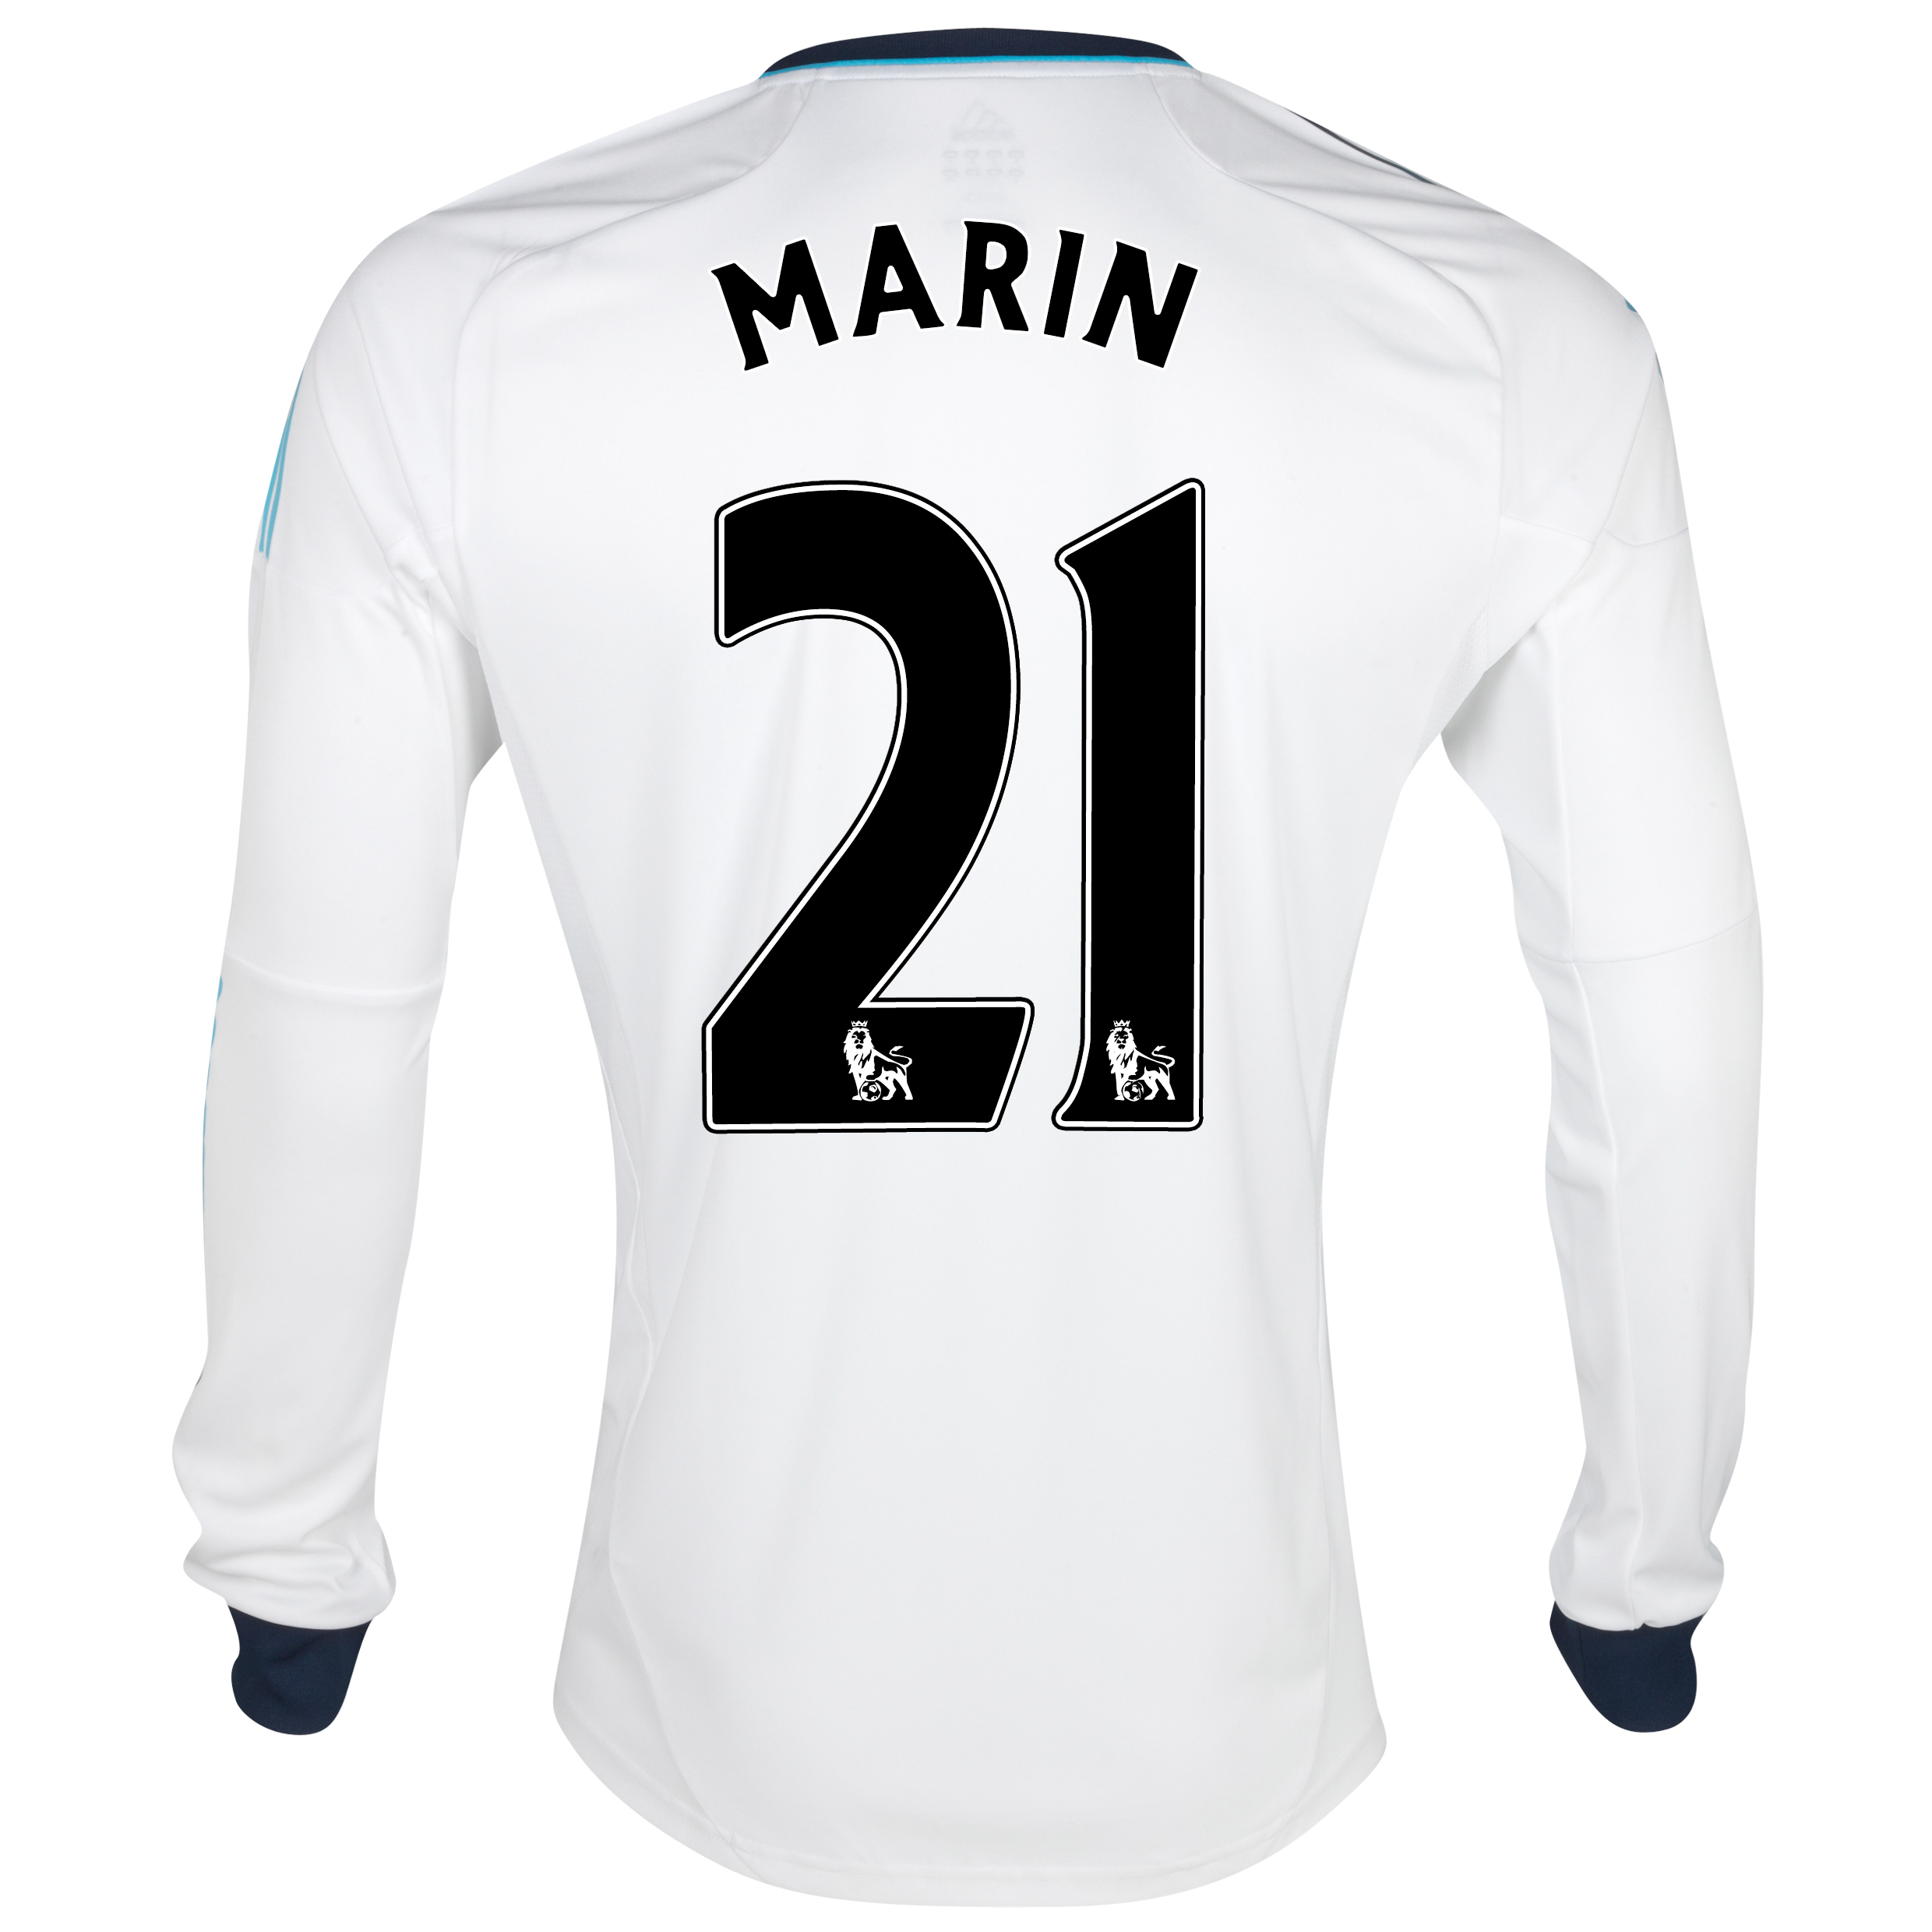 Chelsea Away Shirt 2012/13 - Long Sleeved with Marin 21 printing